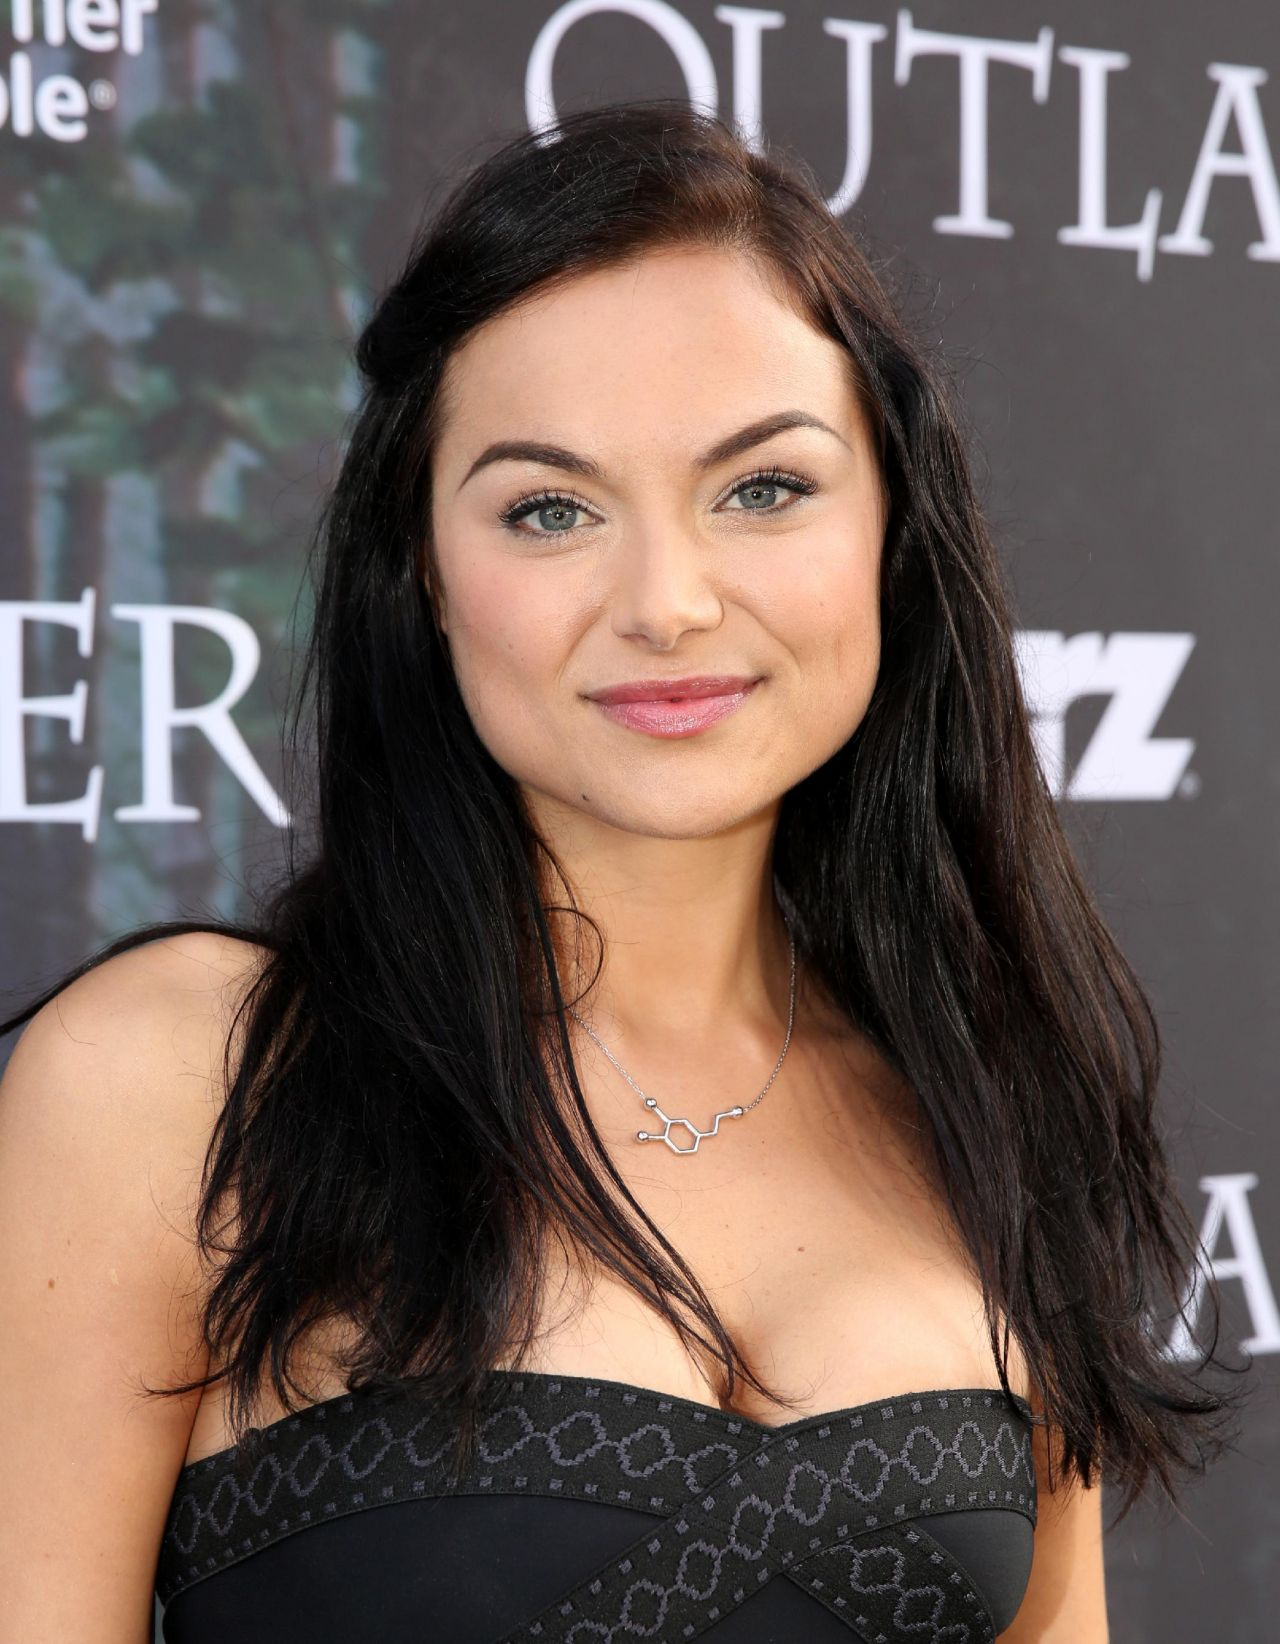 Christina Ochoa Latest Photos Celebmafia